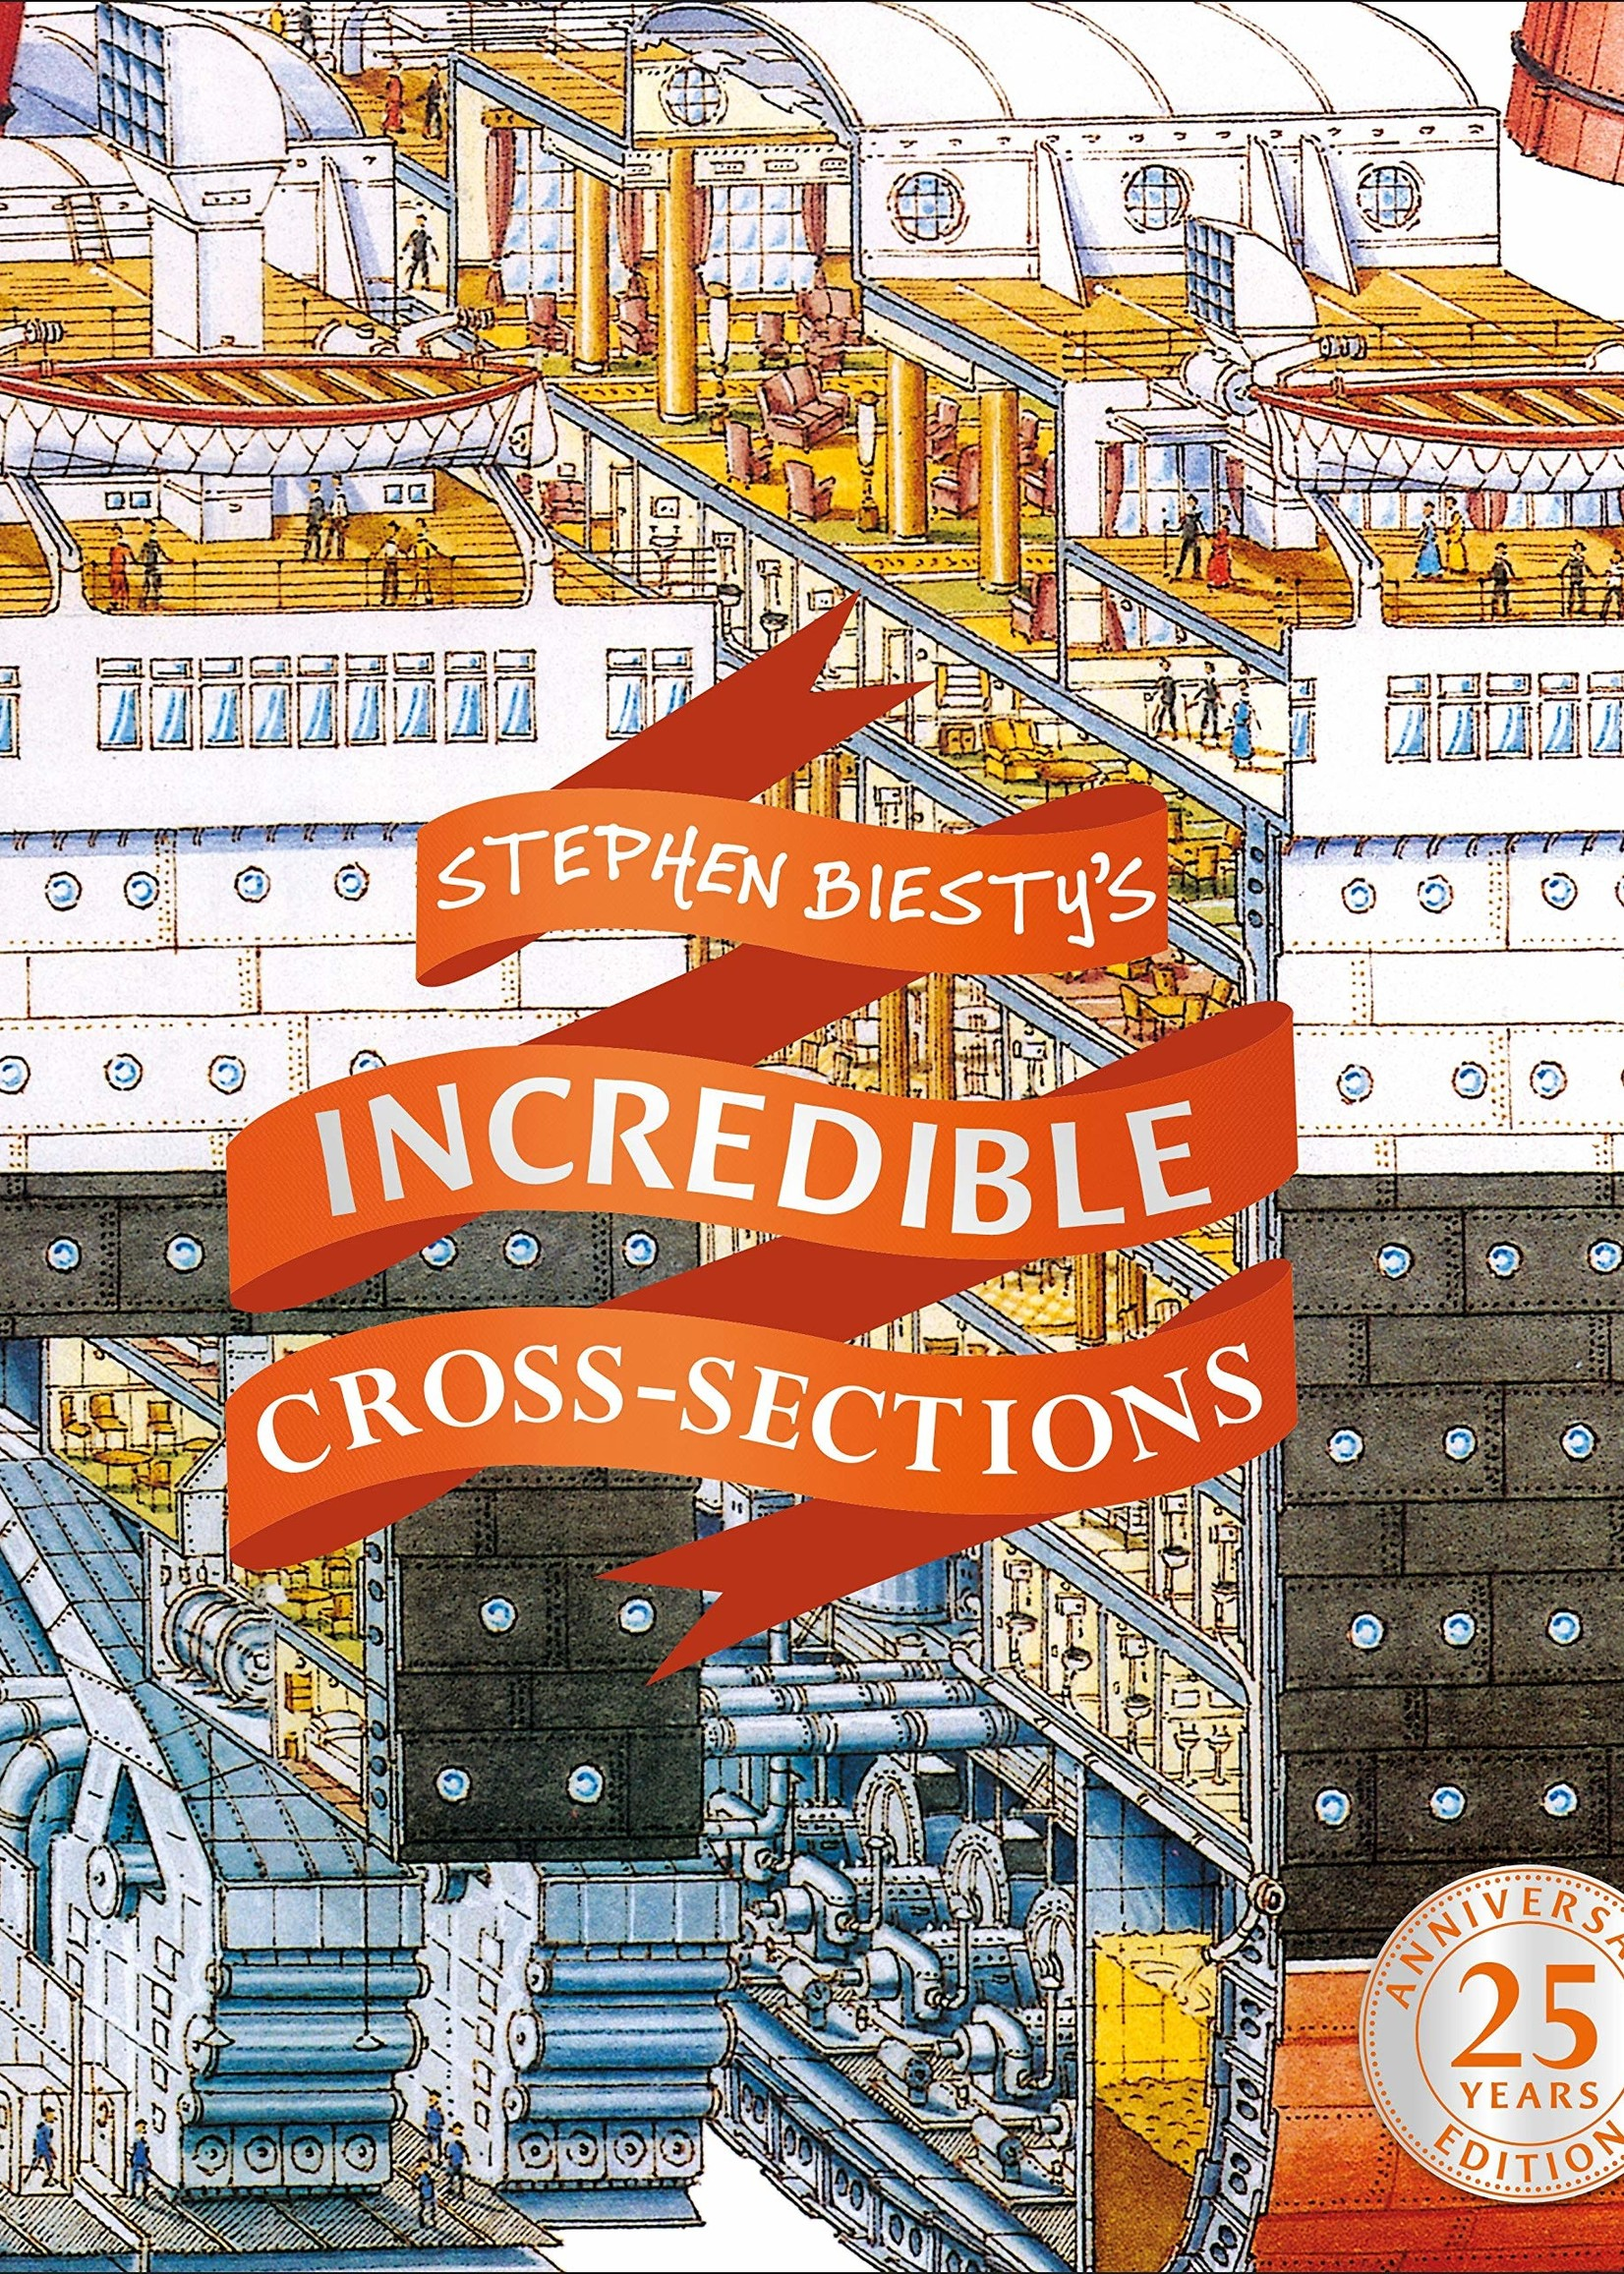 Stephen Biesty's Incredible Cross-Sections - Hardcover